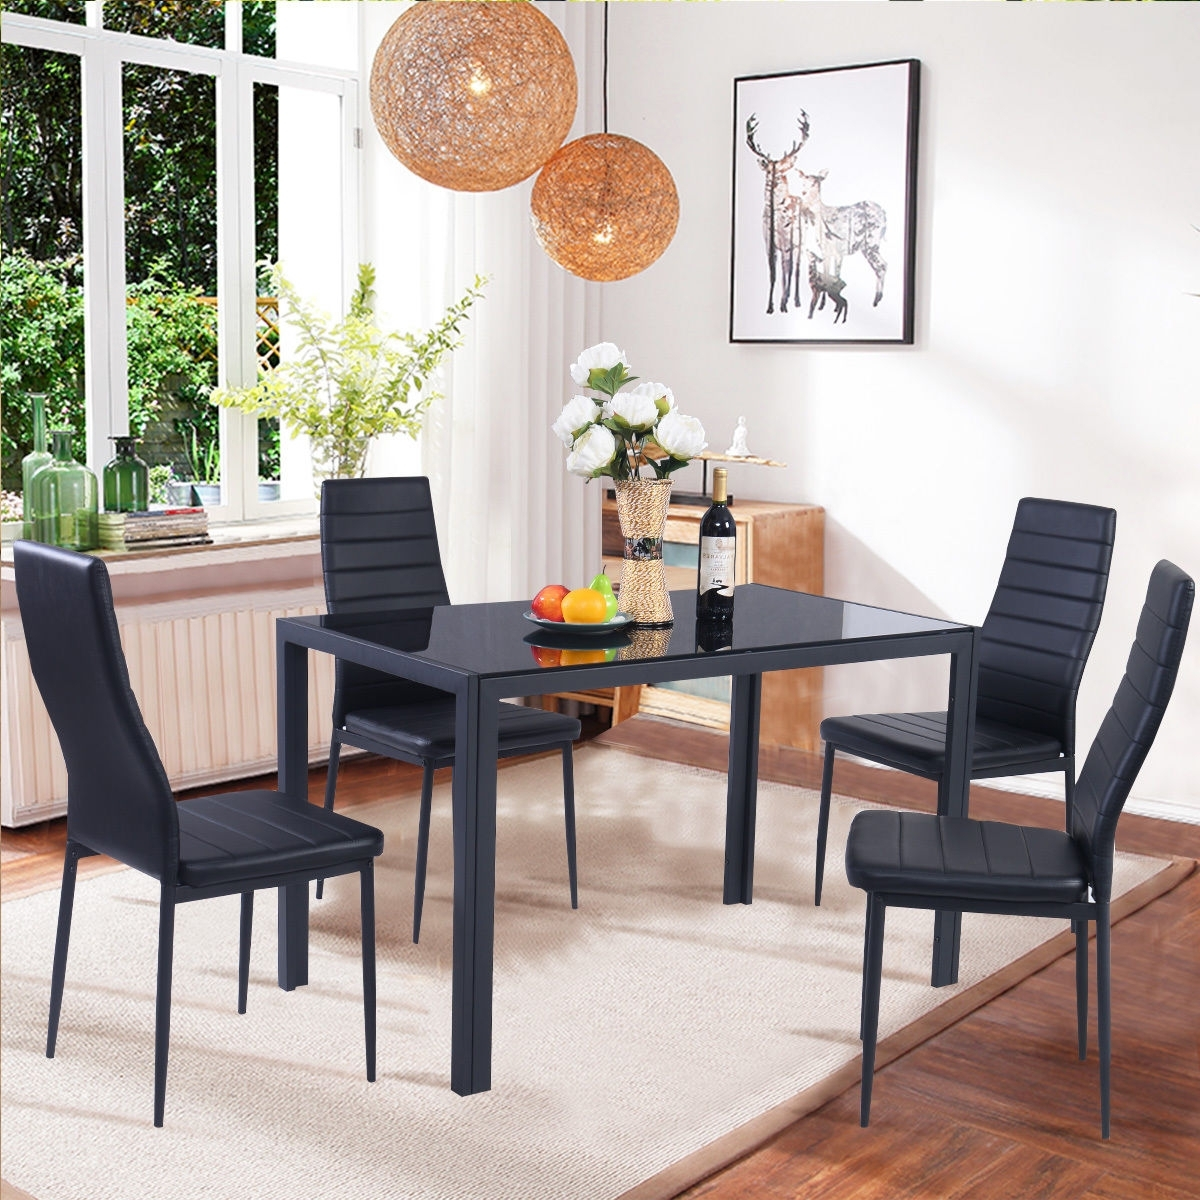 Costway 5 Piece Kitchen Dining Set Glass Metal Table And 4 Chairs Breakfast Furniture In Most Current Black Glass Dining Tables And 4 Chairs (View 9 of 25)